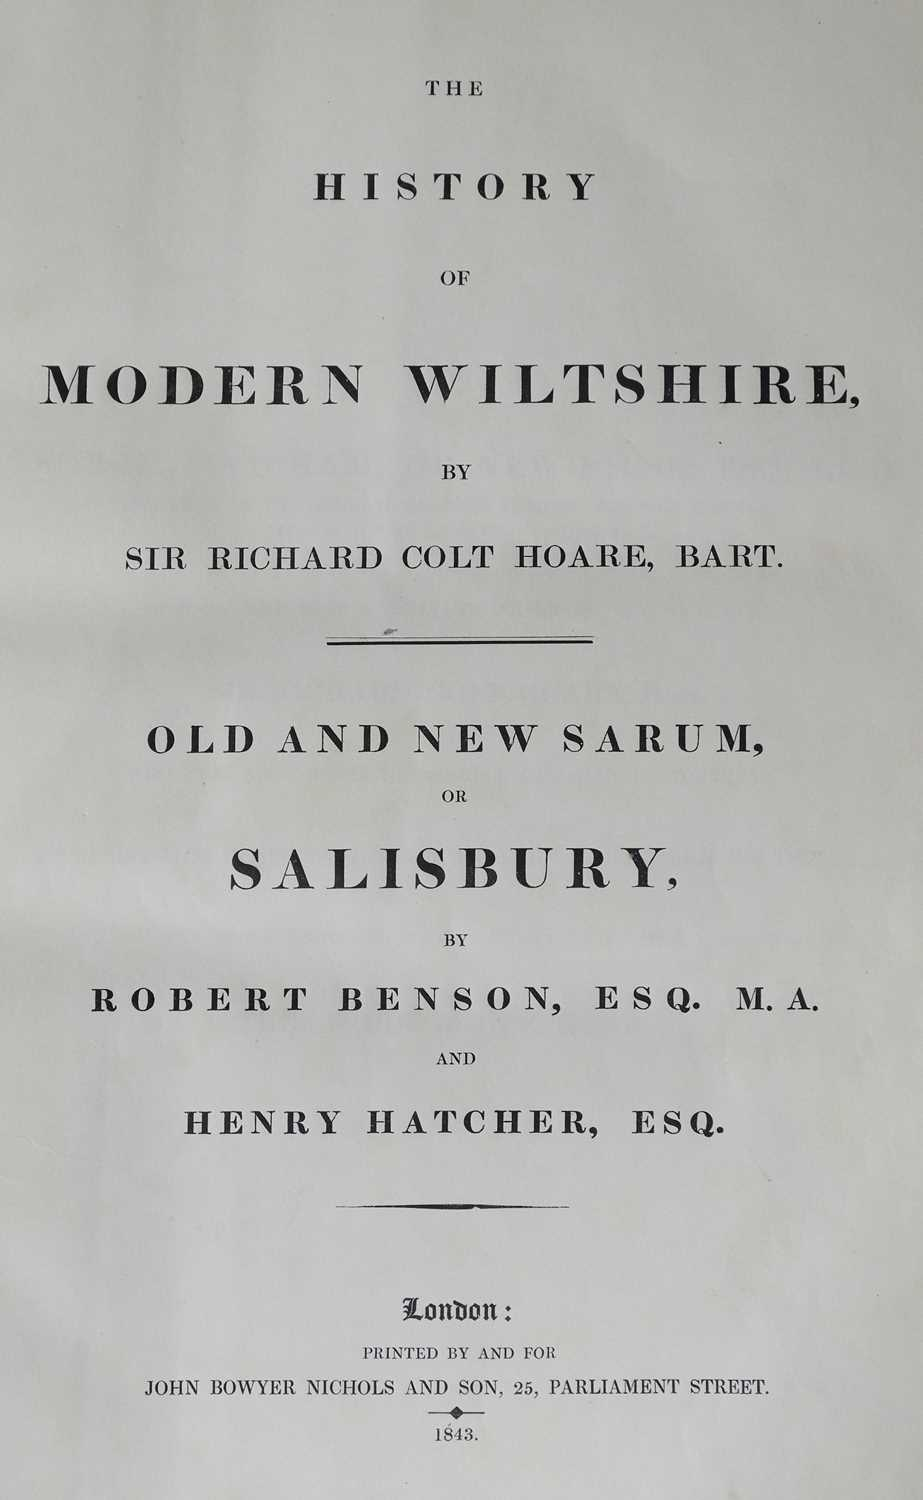 Lot 48 - Hoare (Richard Colt). The History of Modern Wiltshire, 14 volumes in 11, 1822-1844